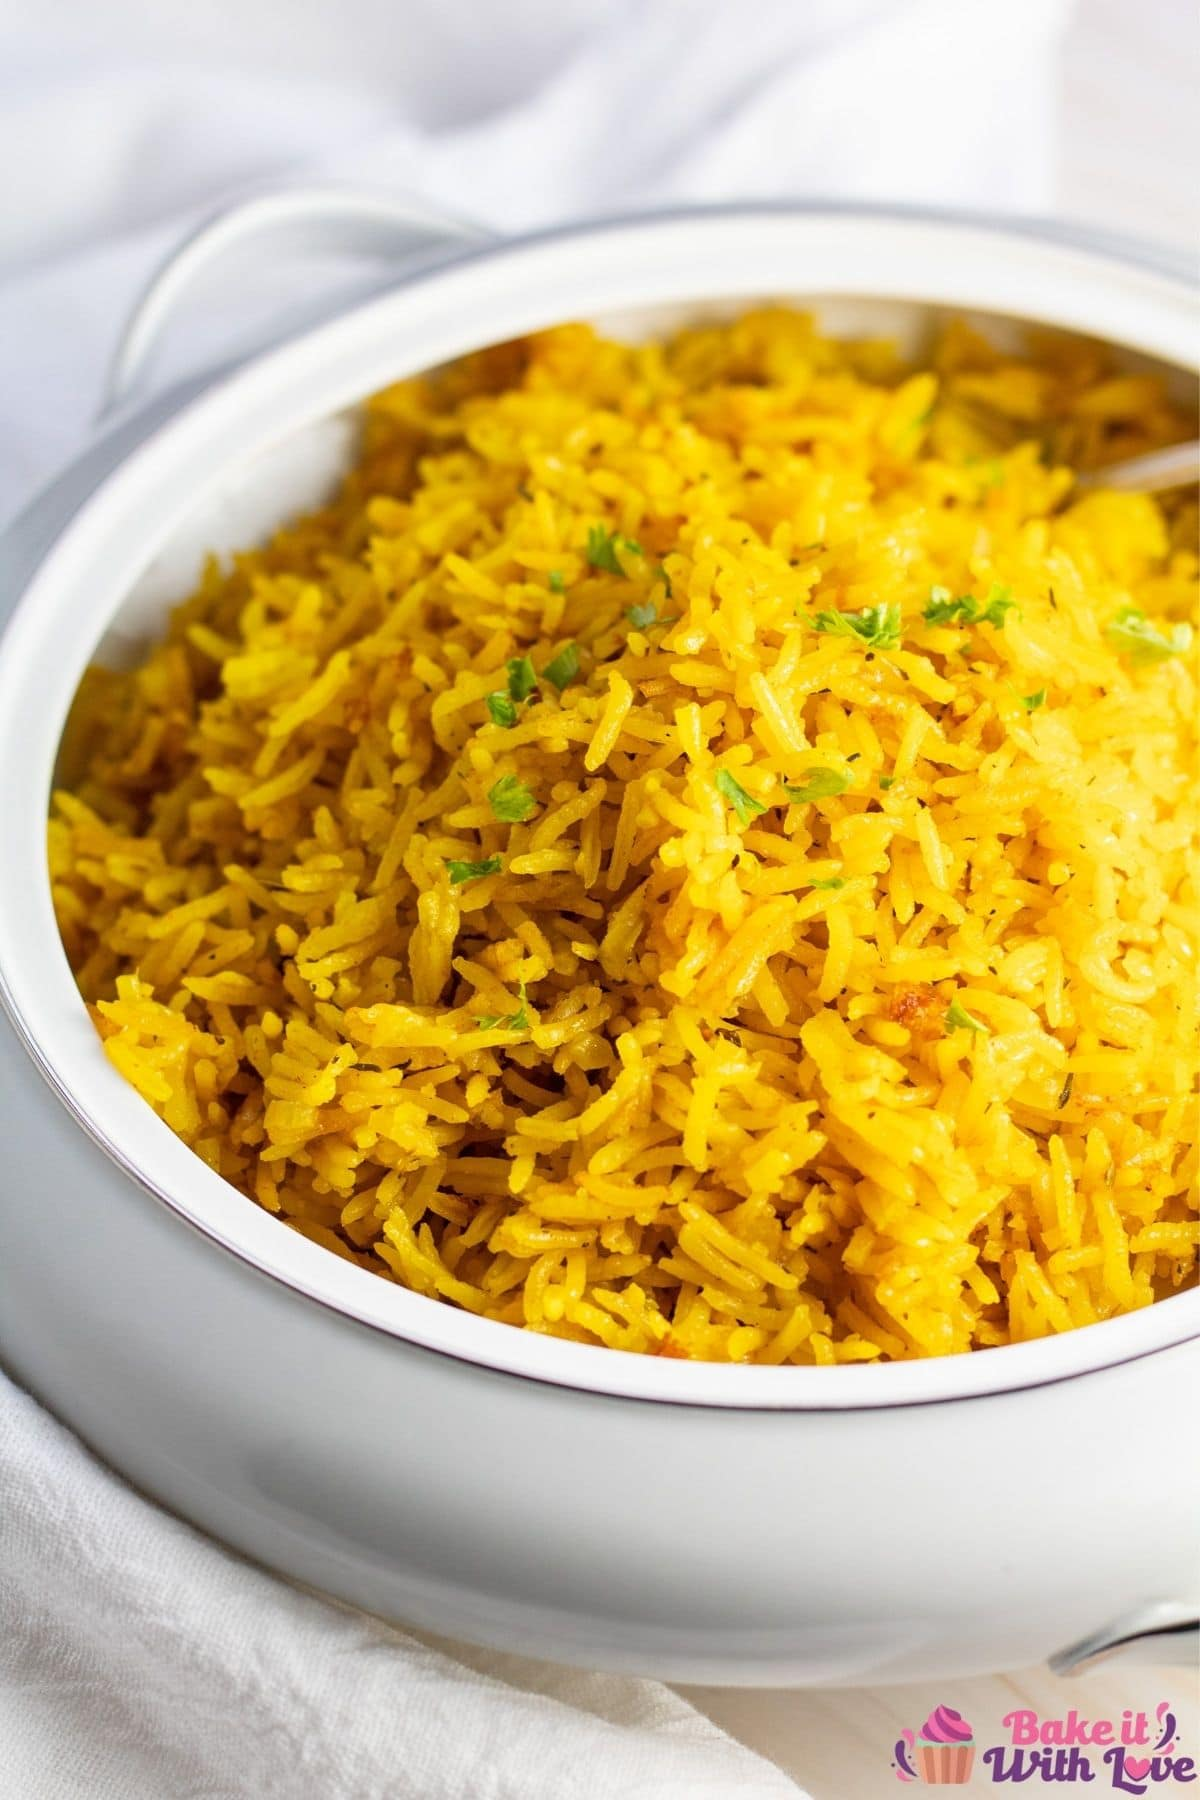 Tall image of the turmeric rice in serving dish.